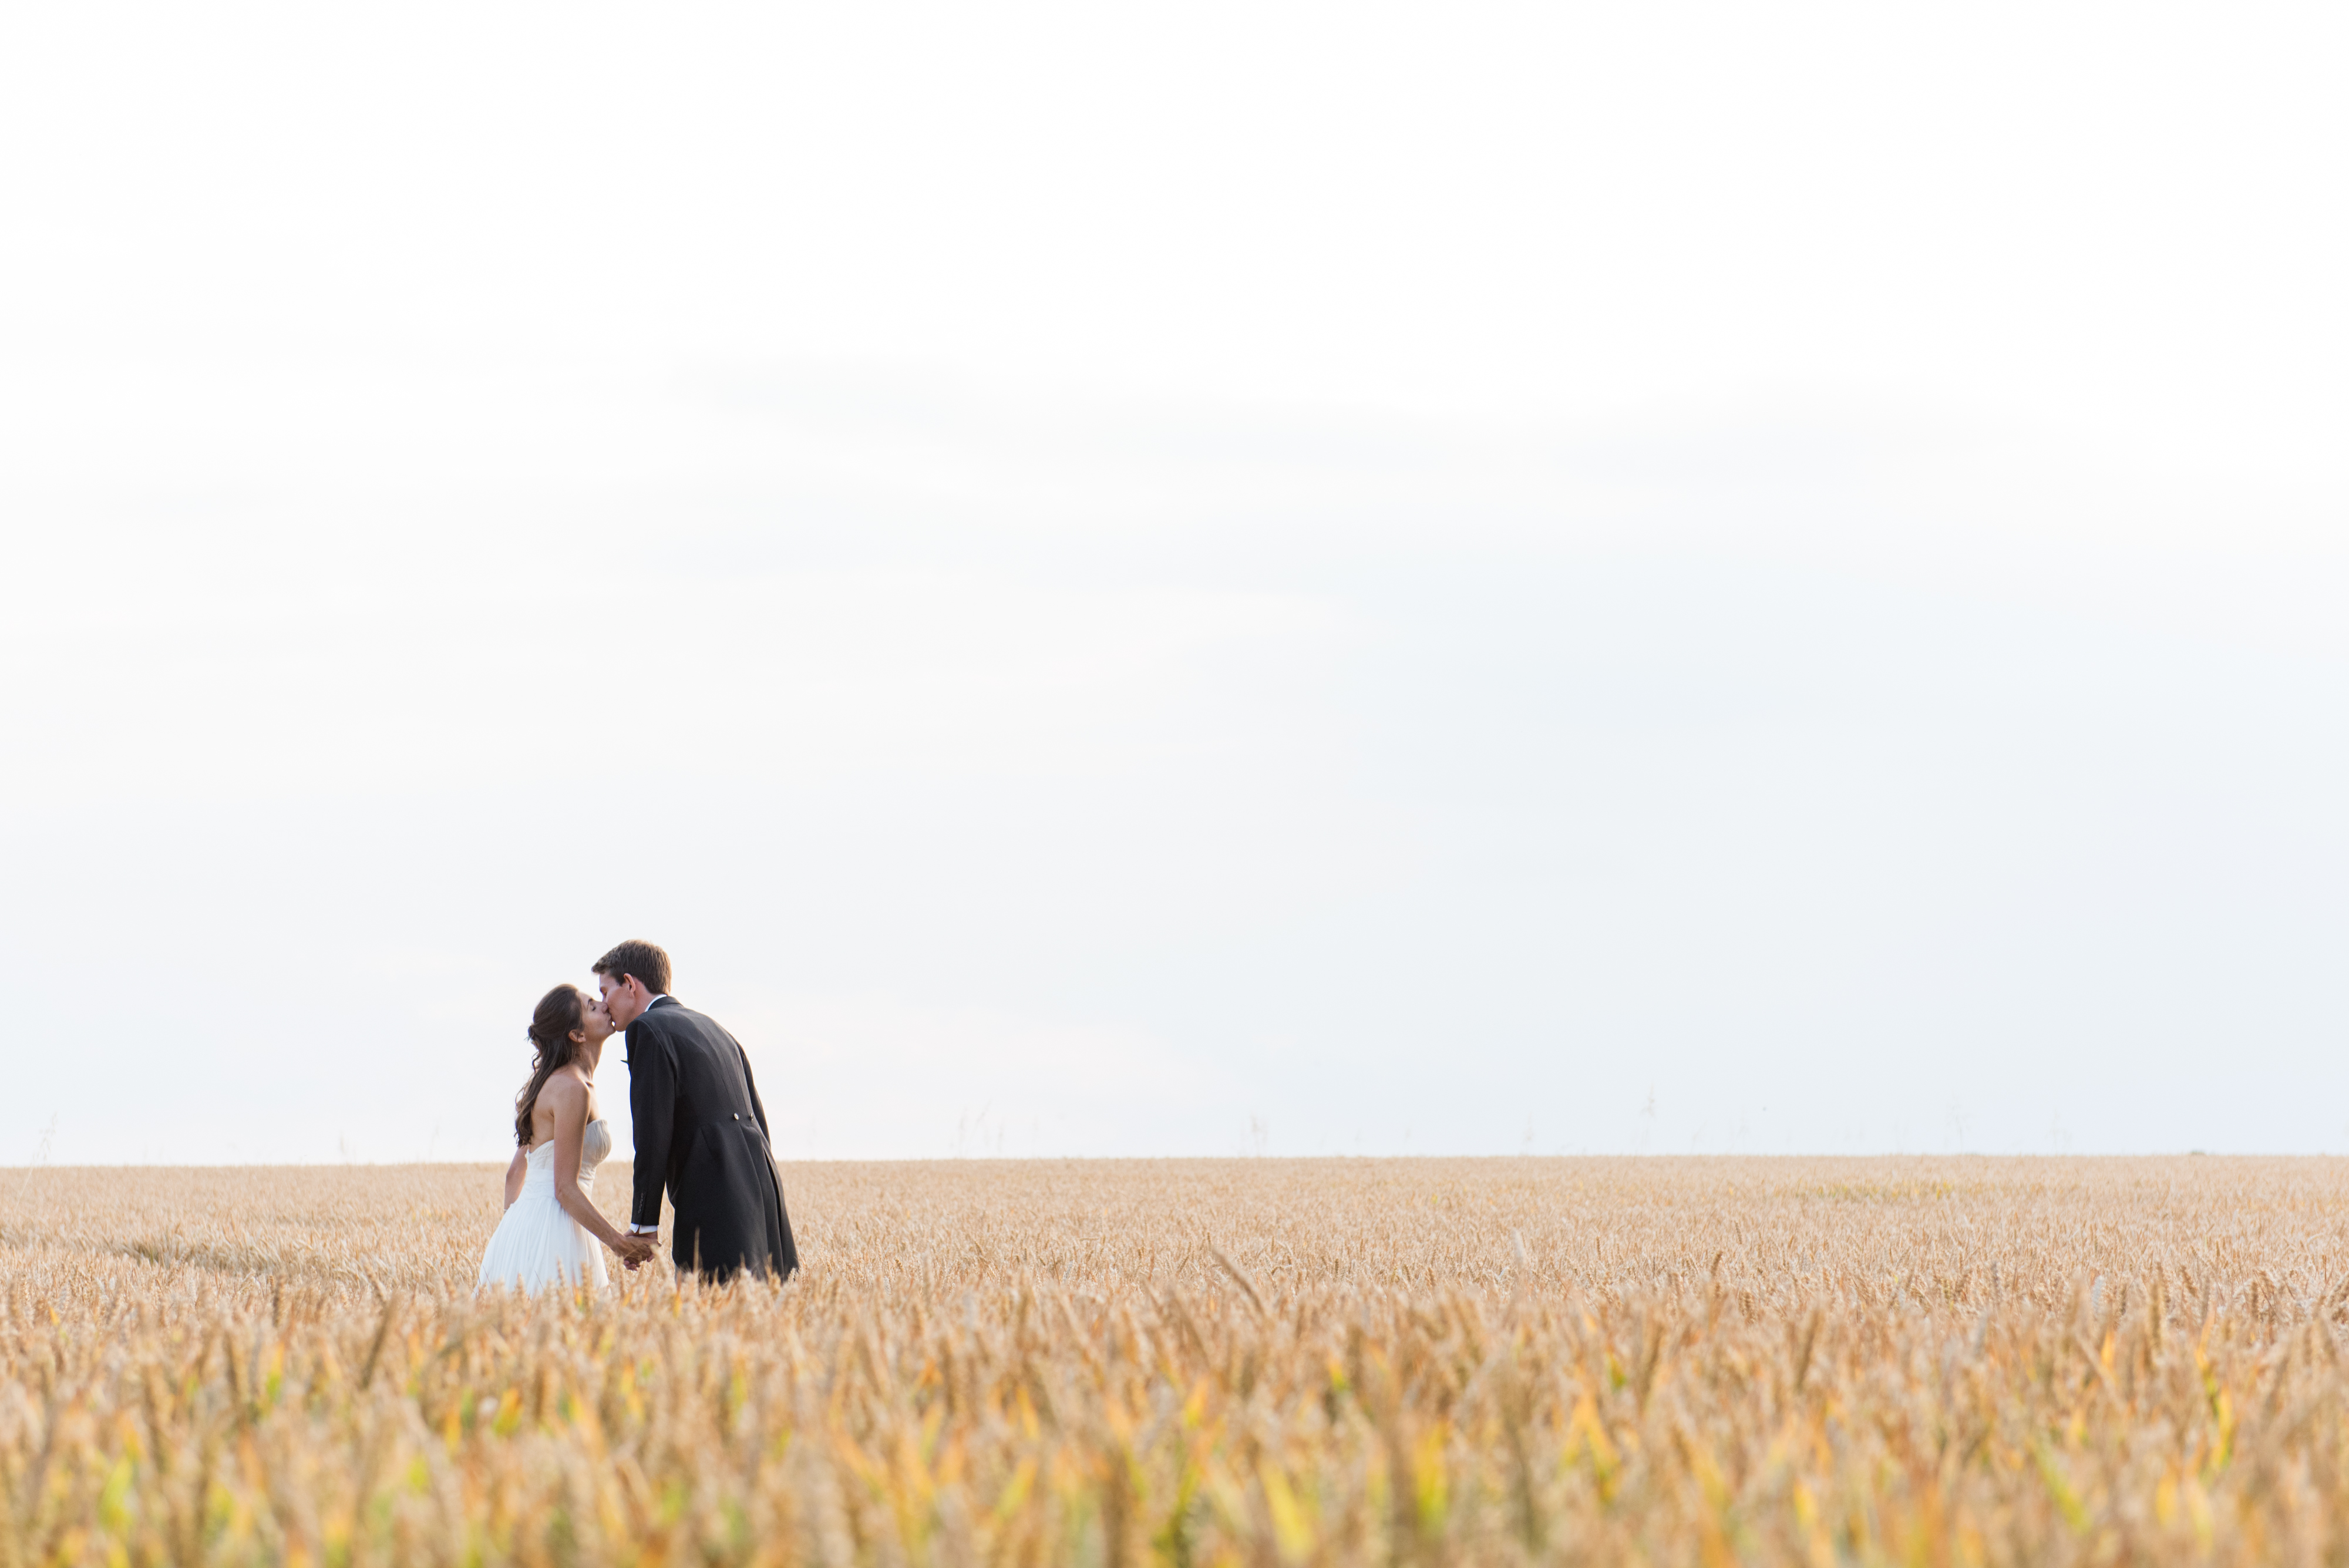 Jm-blog-garden-countryside-wedding-134